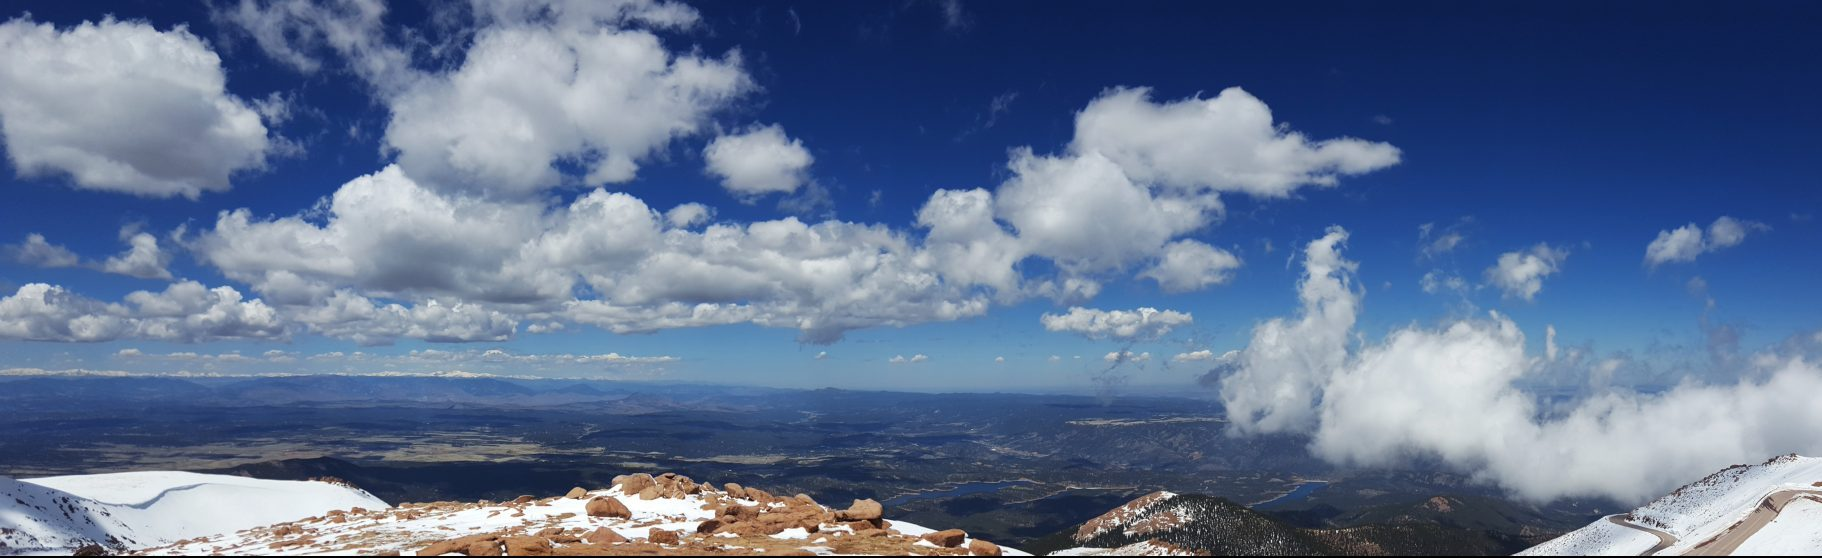 Driving to the Top of Pikes Peak • Nomad by Trade